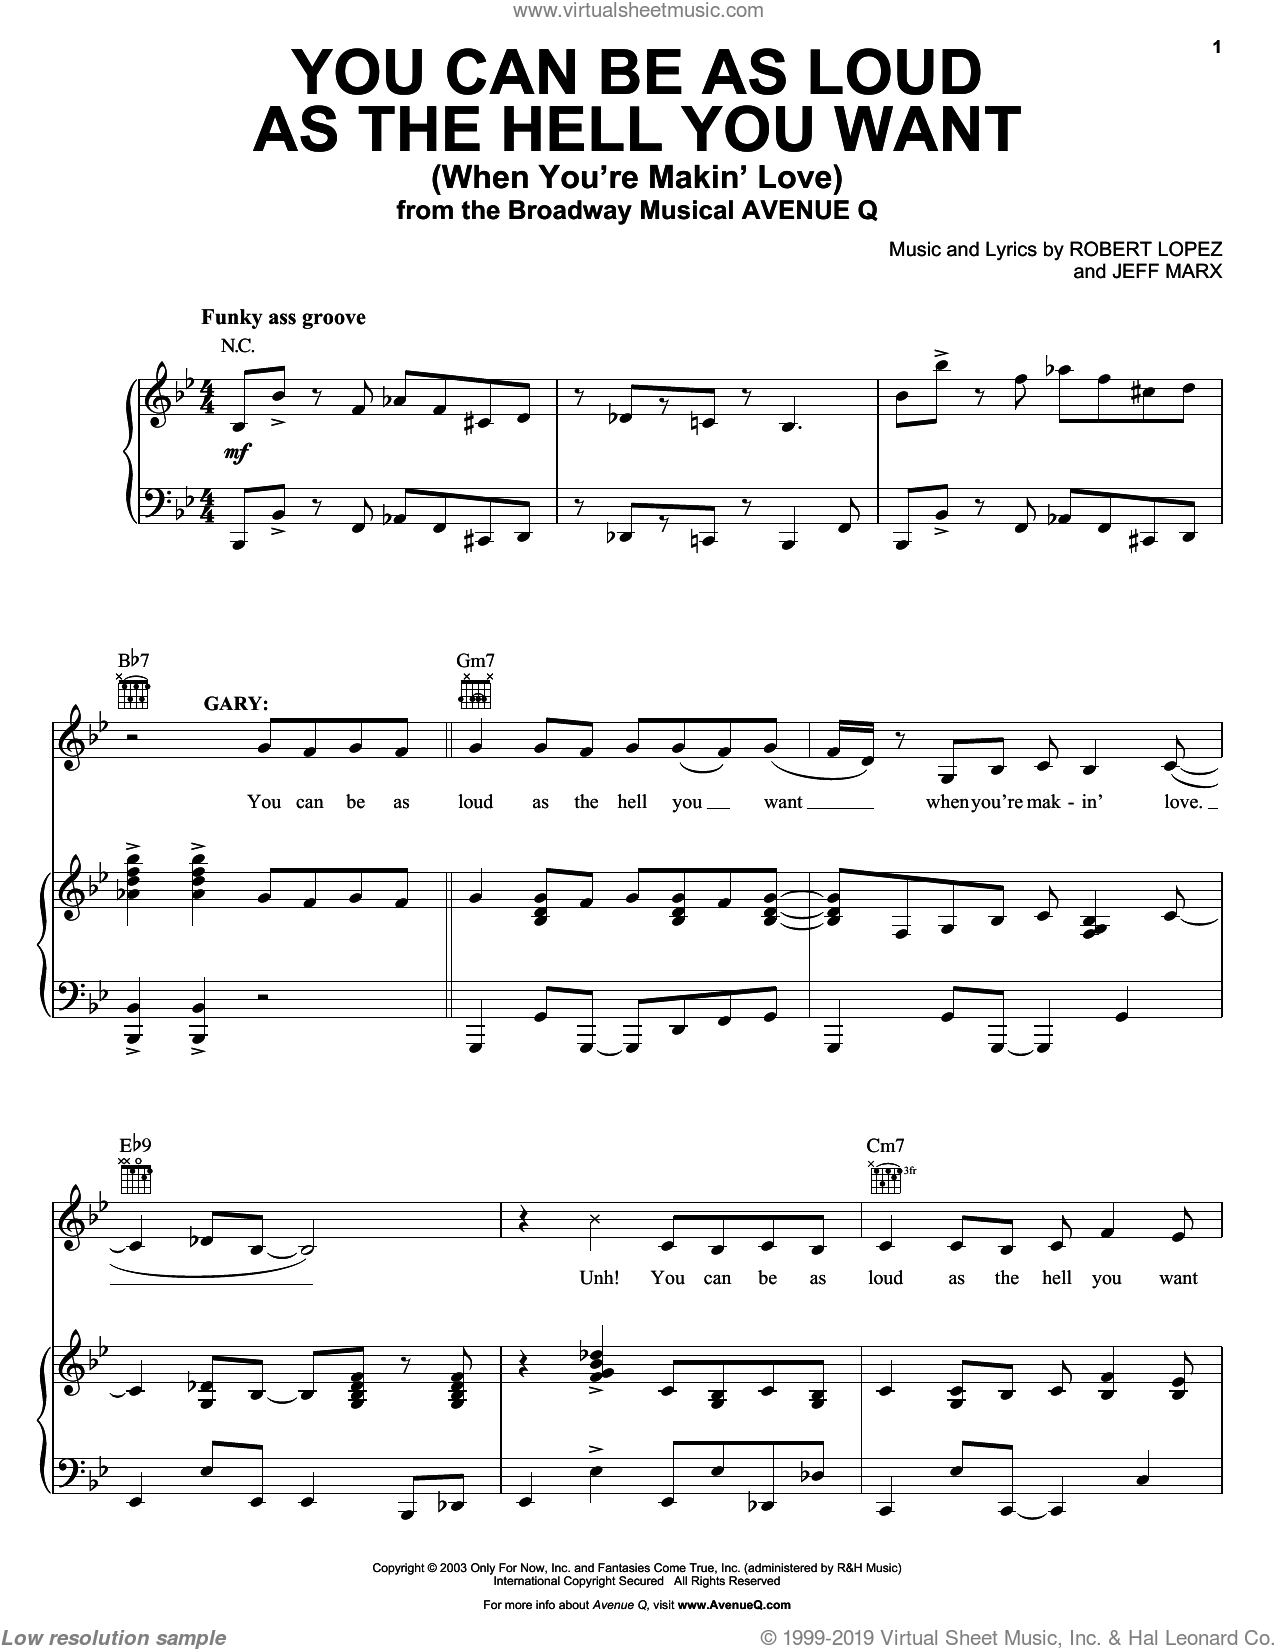 You Can Be As Loud As The Hell You Want (When You're Makin' Love) sheet music for voice, piano or guitar by Avenue Q, Jeff Marx and Robert Lopez, intermediate